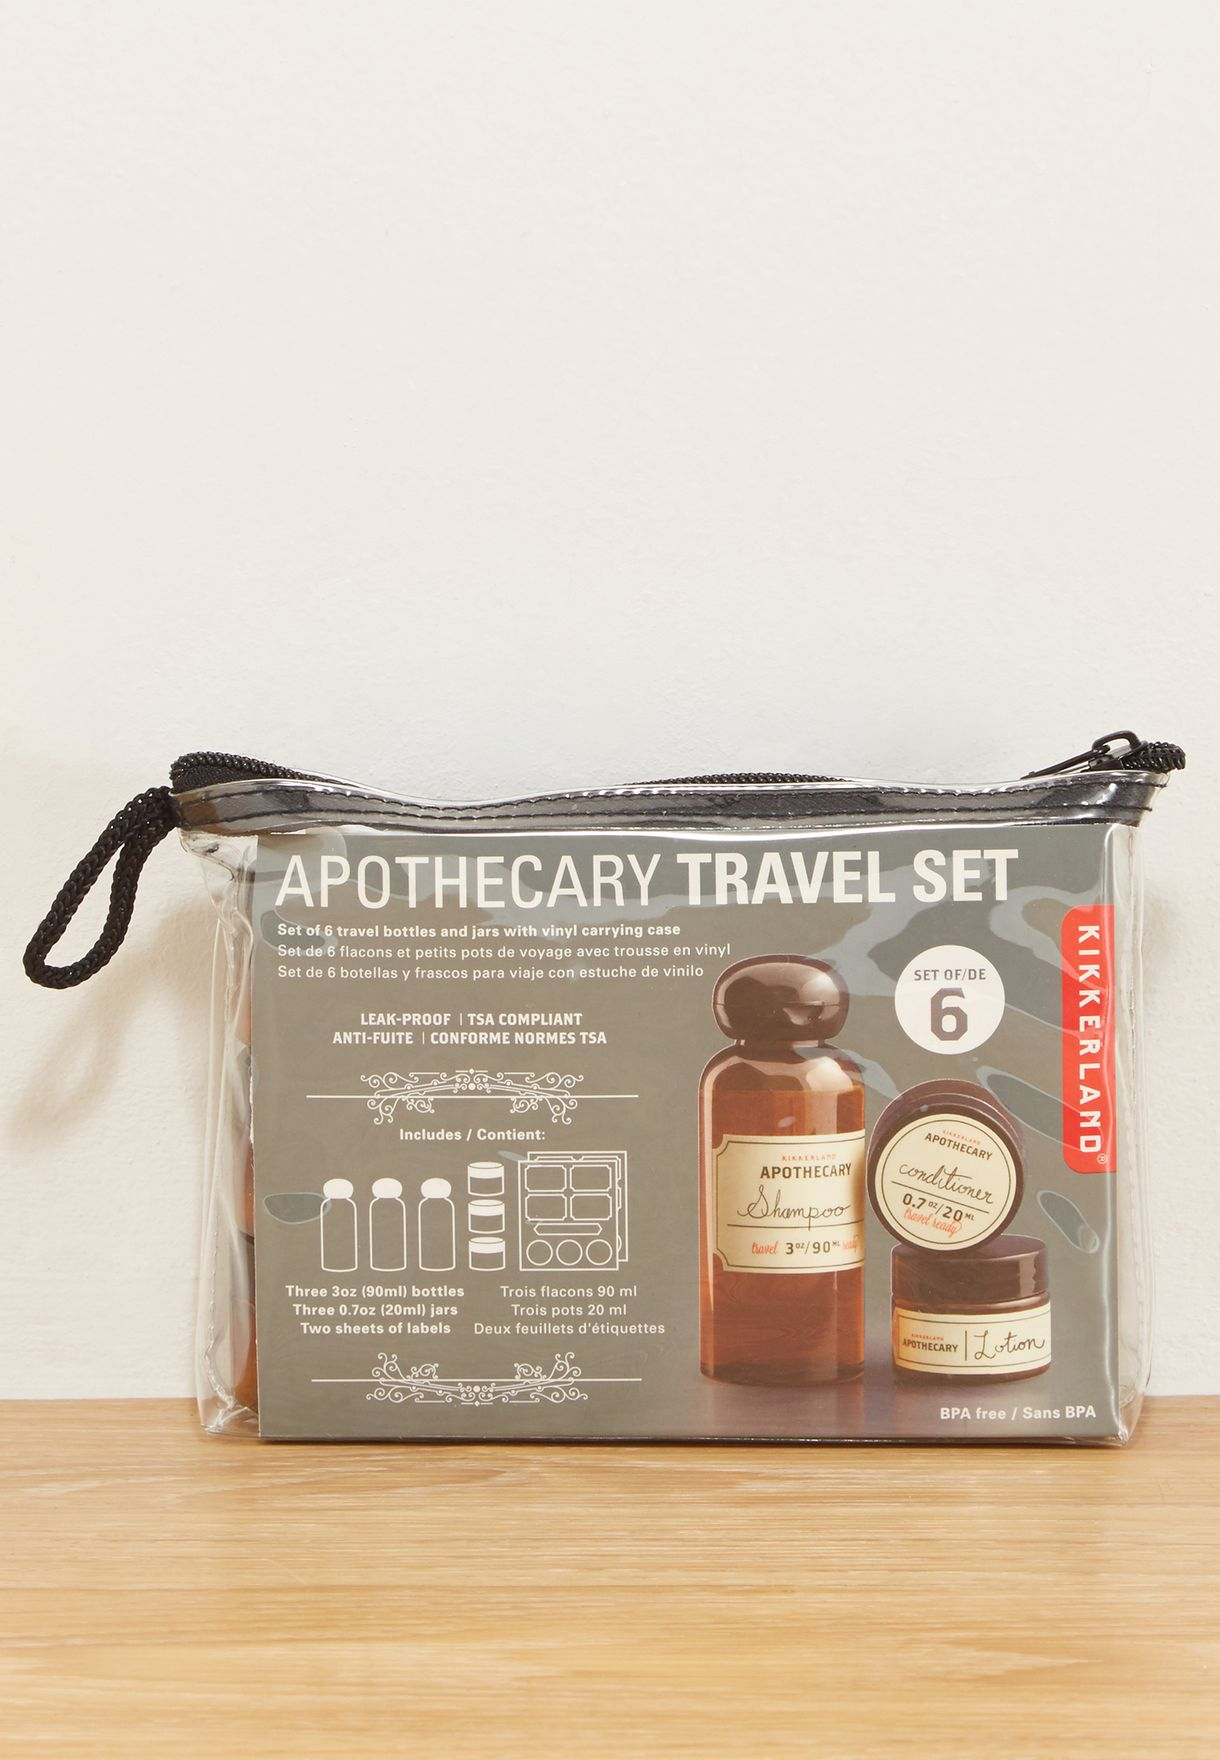 e6e0c6533e9e Apothecary Travel Set